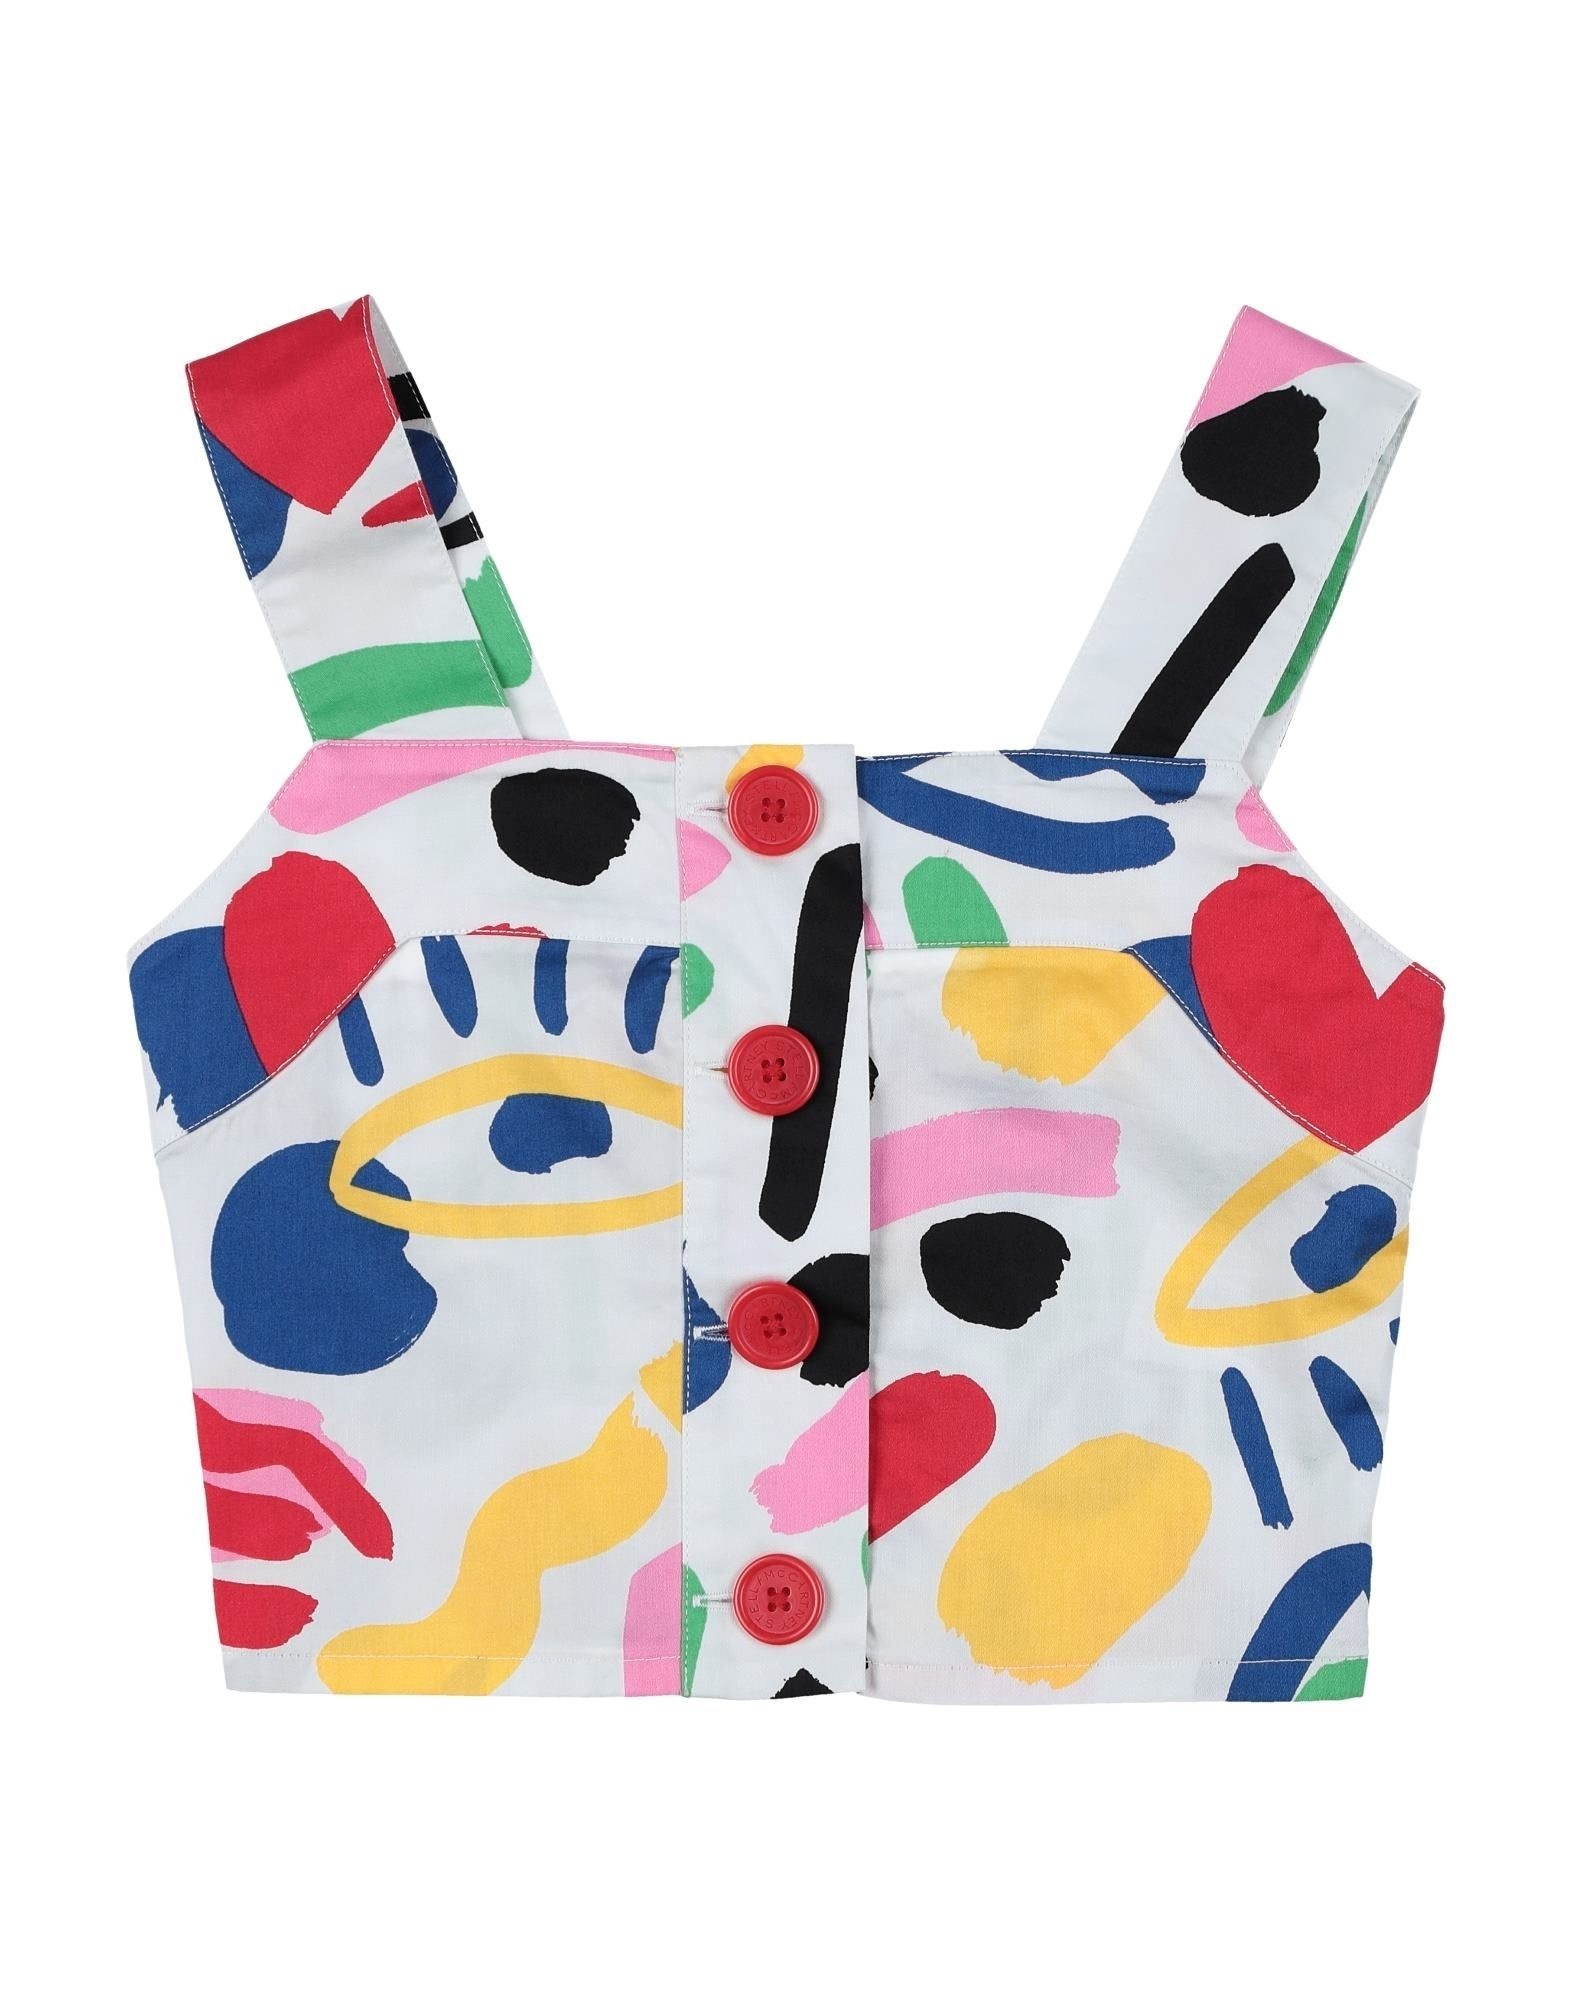 STELLA McCARTNEY KIDS Shirts. plain weave, no appliqués, multicolor pattern, front closure, button closing, sleeveless, square neckline, no pockets, wash at 30degree c, do not dry clean, iron at 110degree c max, do not bleach, do not tumble dry. 100% Cotton